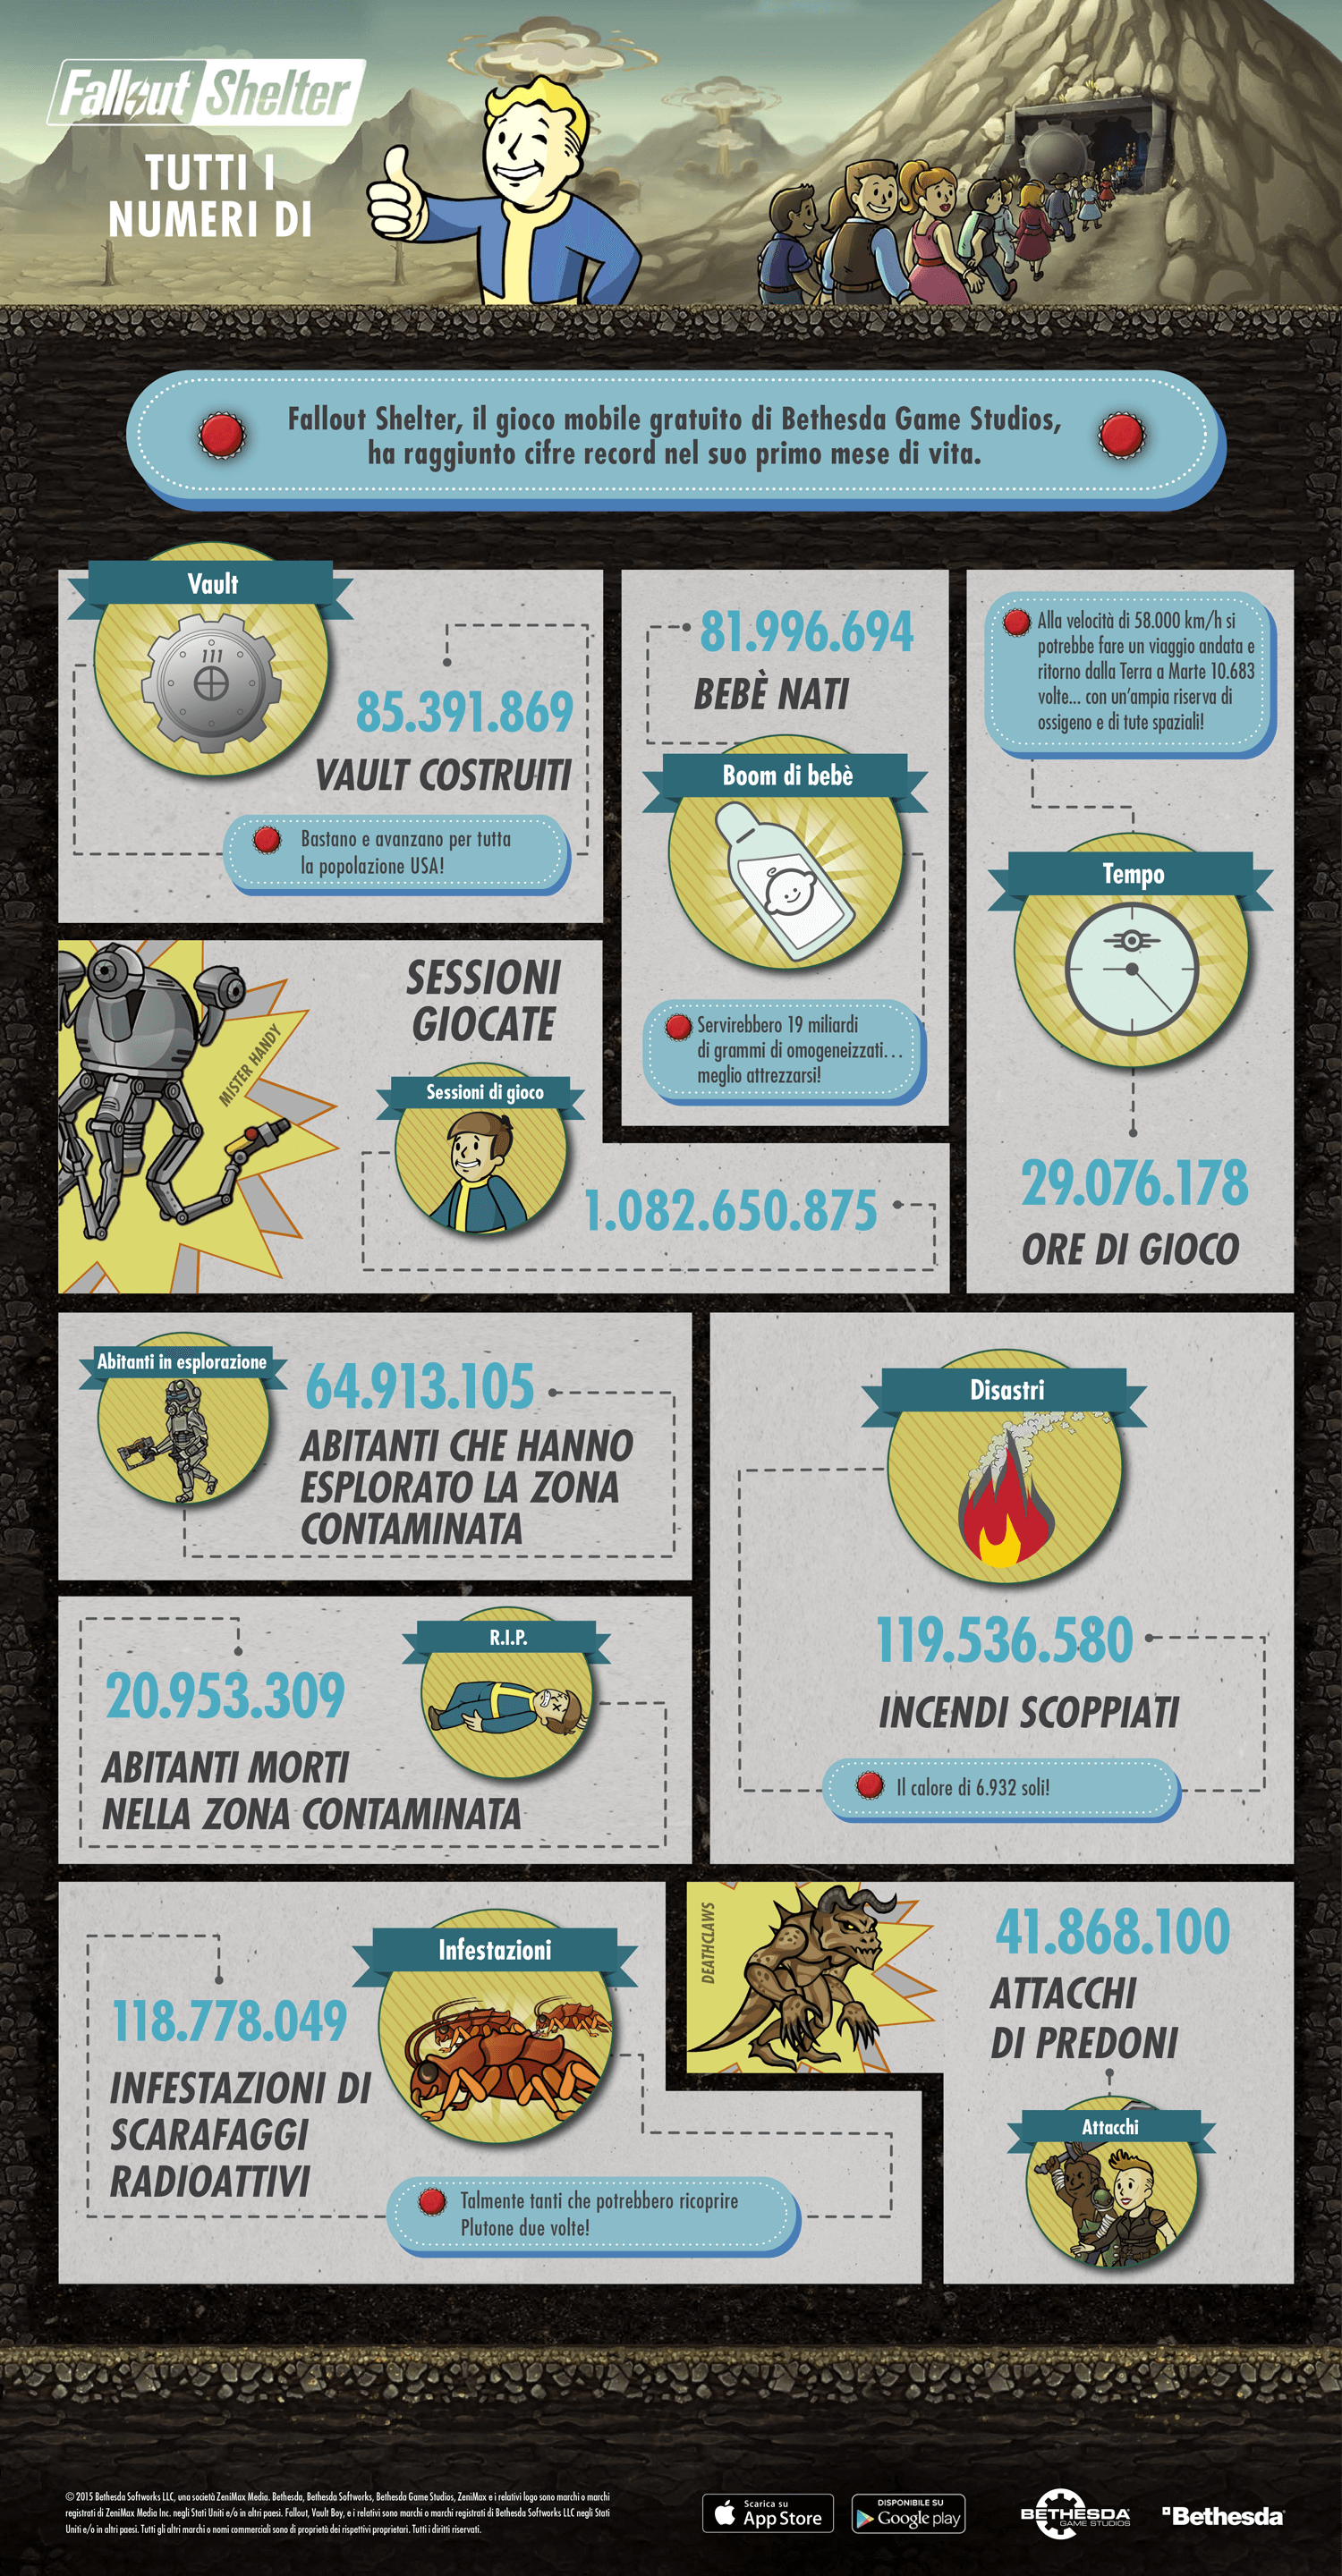 FalloutShelter_Infographic_v11-IT